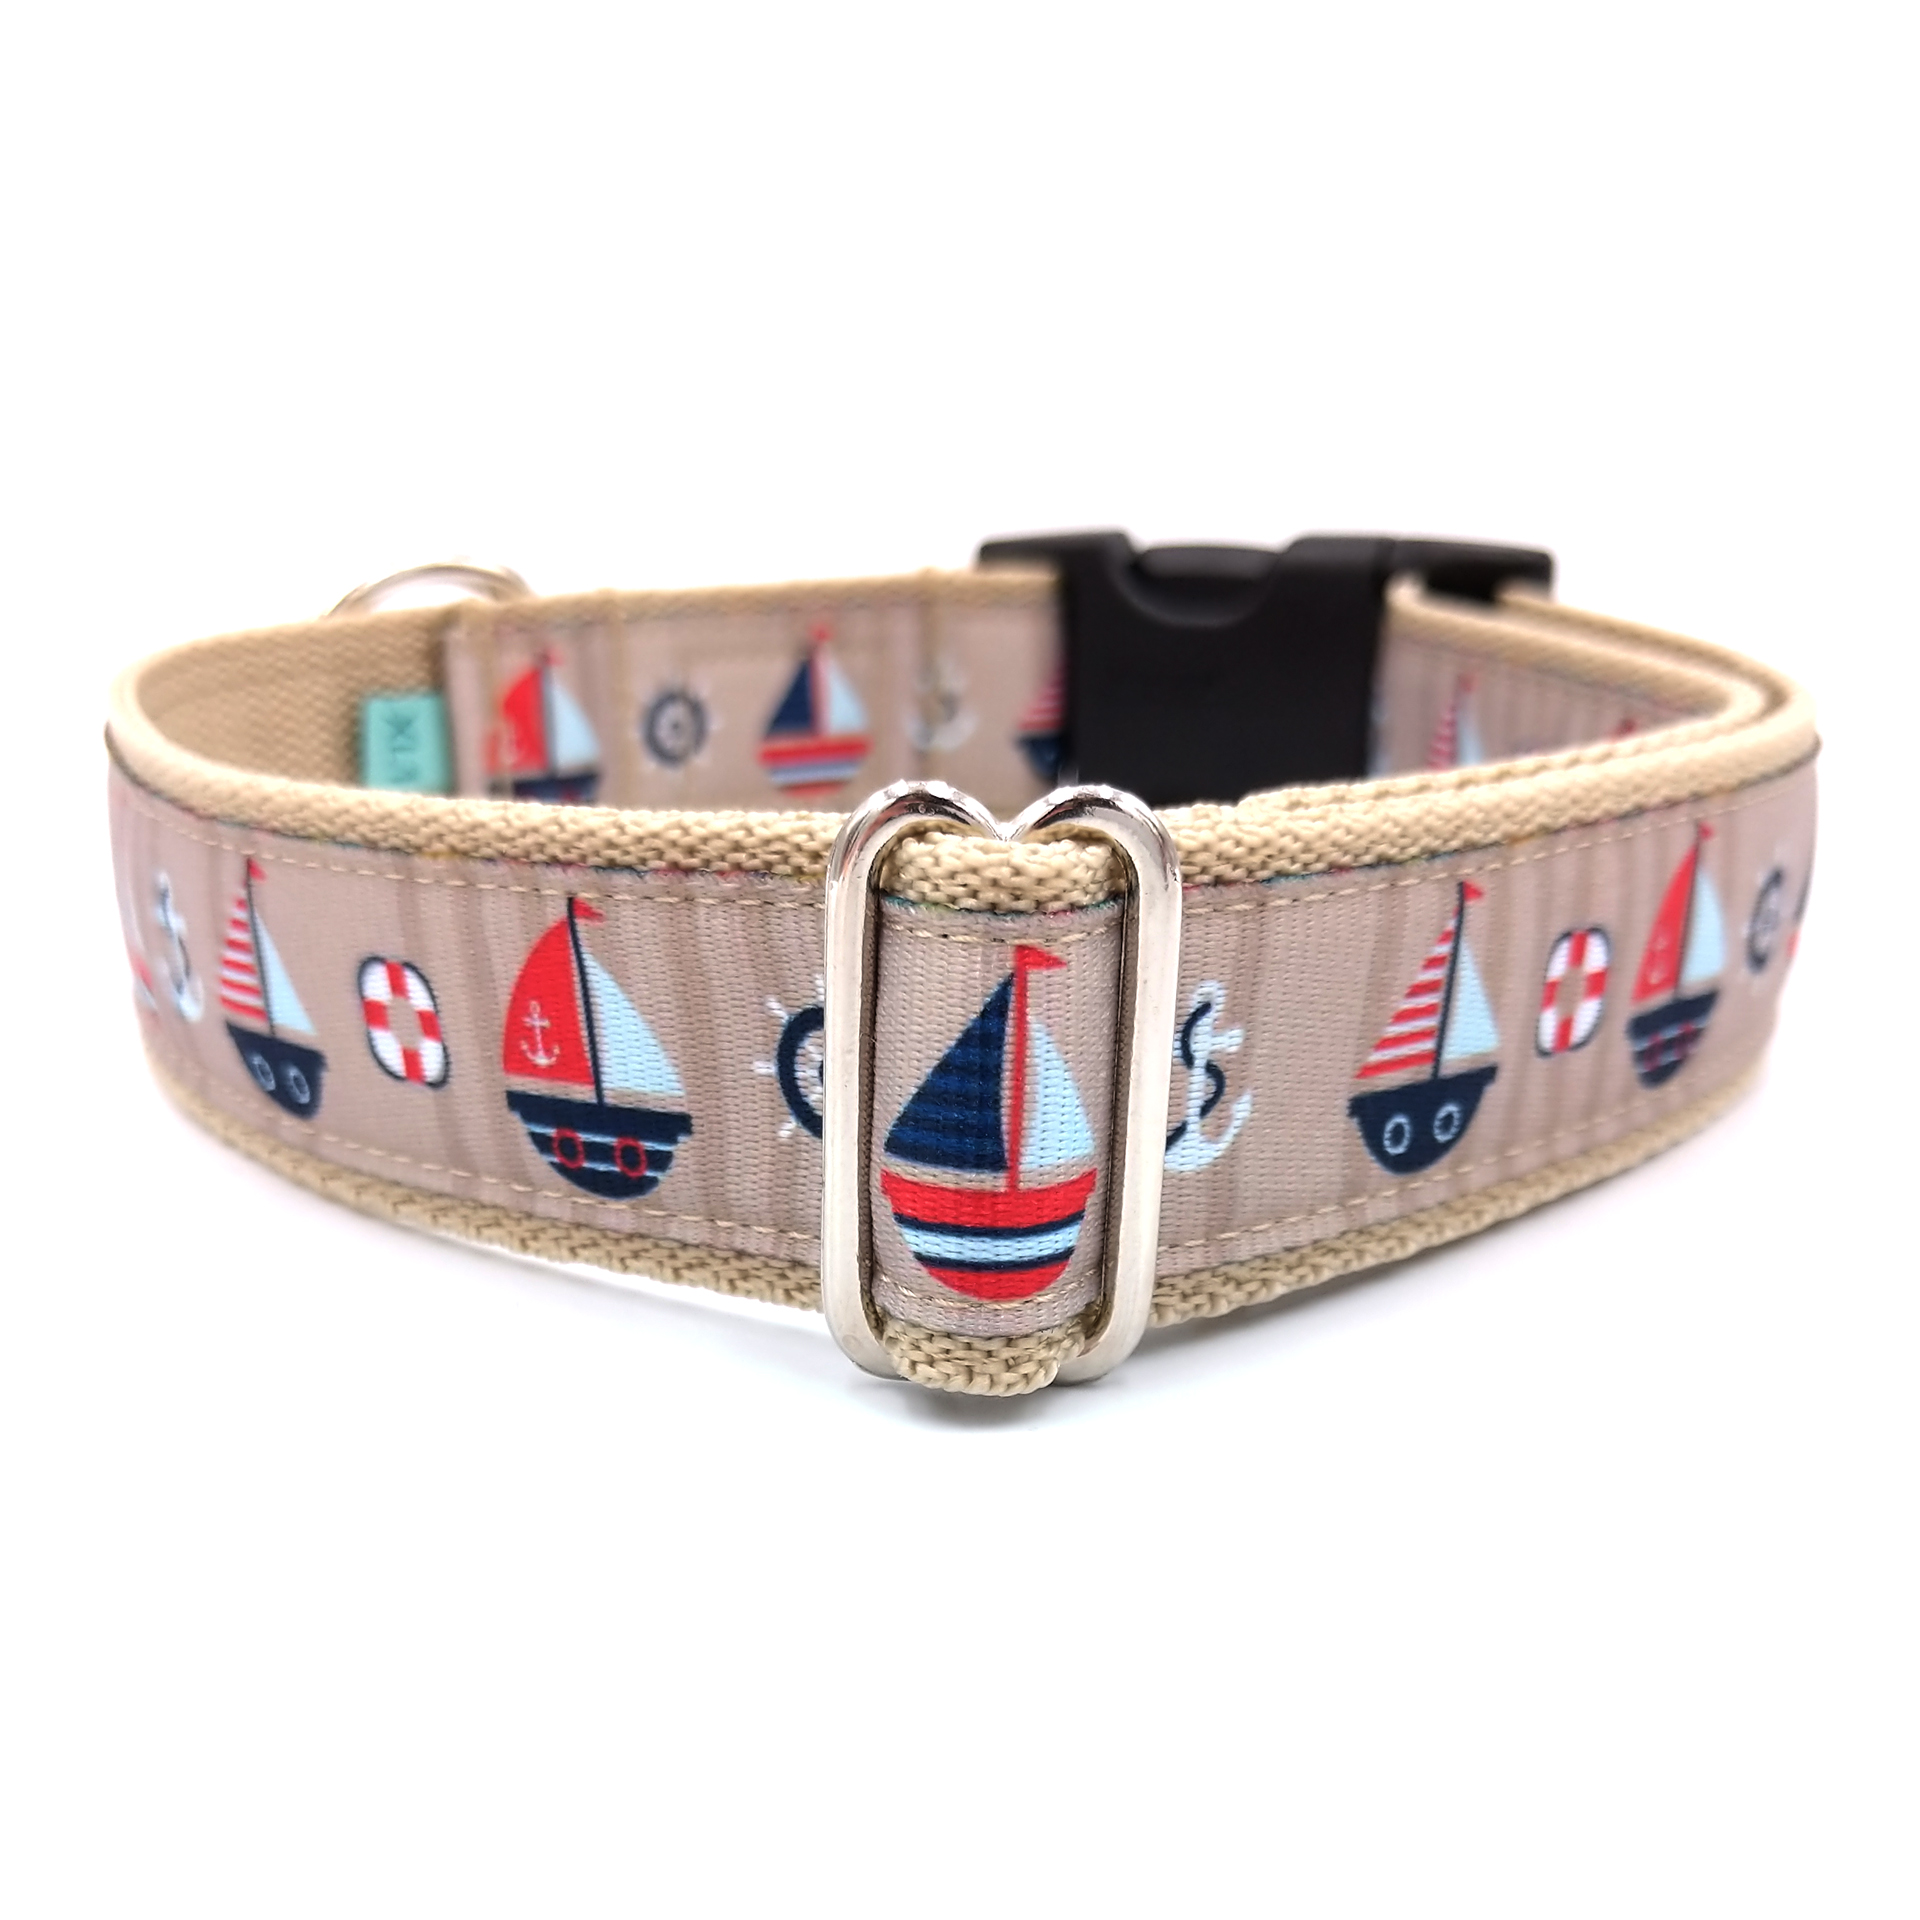 Raft dog collar